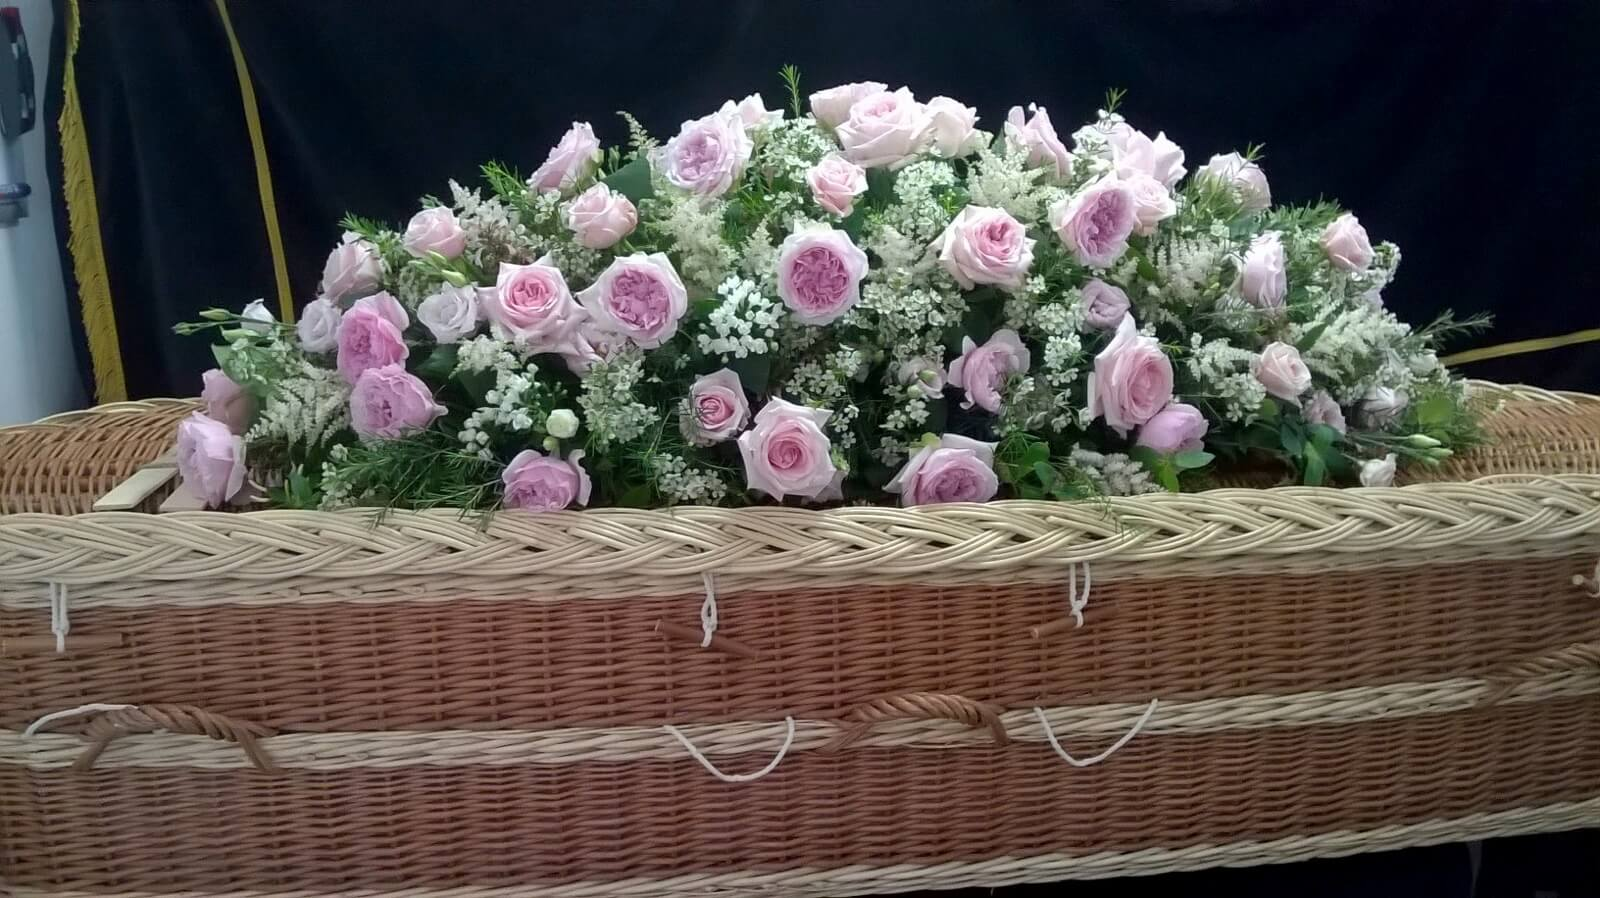 Funeral flowers beaulieu hythe dibden belle and blossom the flowers were amazingthey looked gorgeous on the coffin must have taken hours of work what an artist and then the bouquets we couldnt be izmirmasajfo